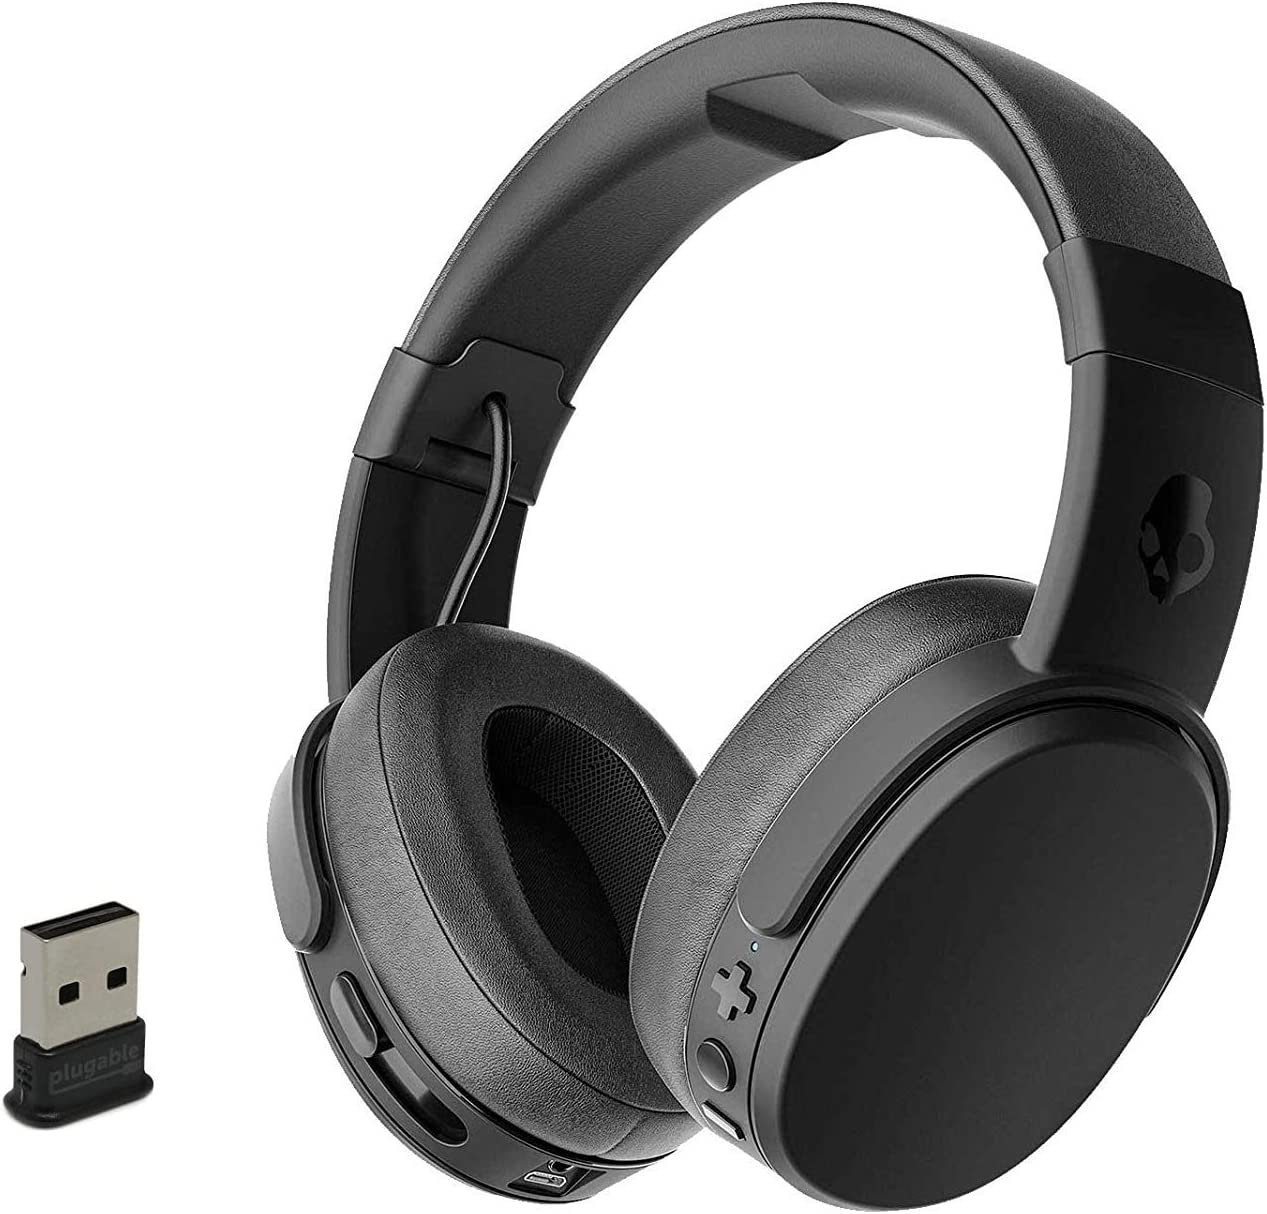 Skullcandy Crusher Foldable Noise Isolating Over-Ear Wireless Bluetooth Immersive Headphone Bundle with Plugable USB 2.0 Bluetooth Adapter - Black/Coral